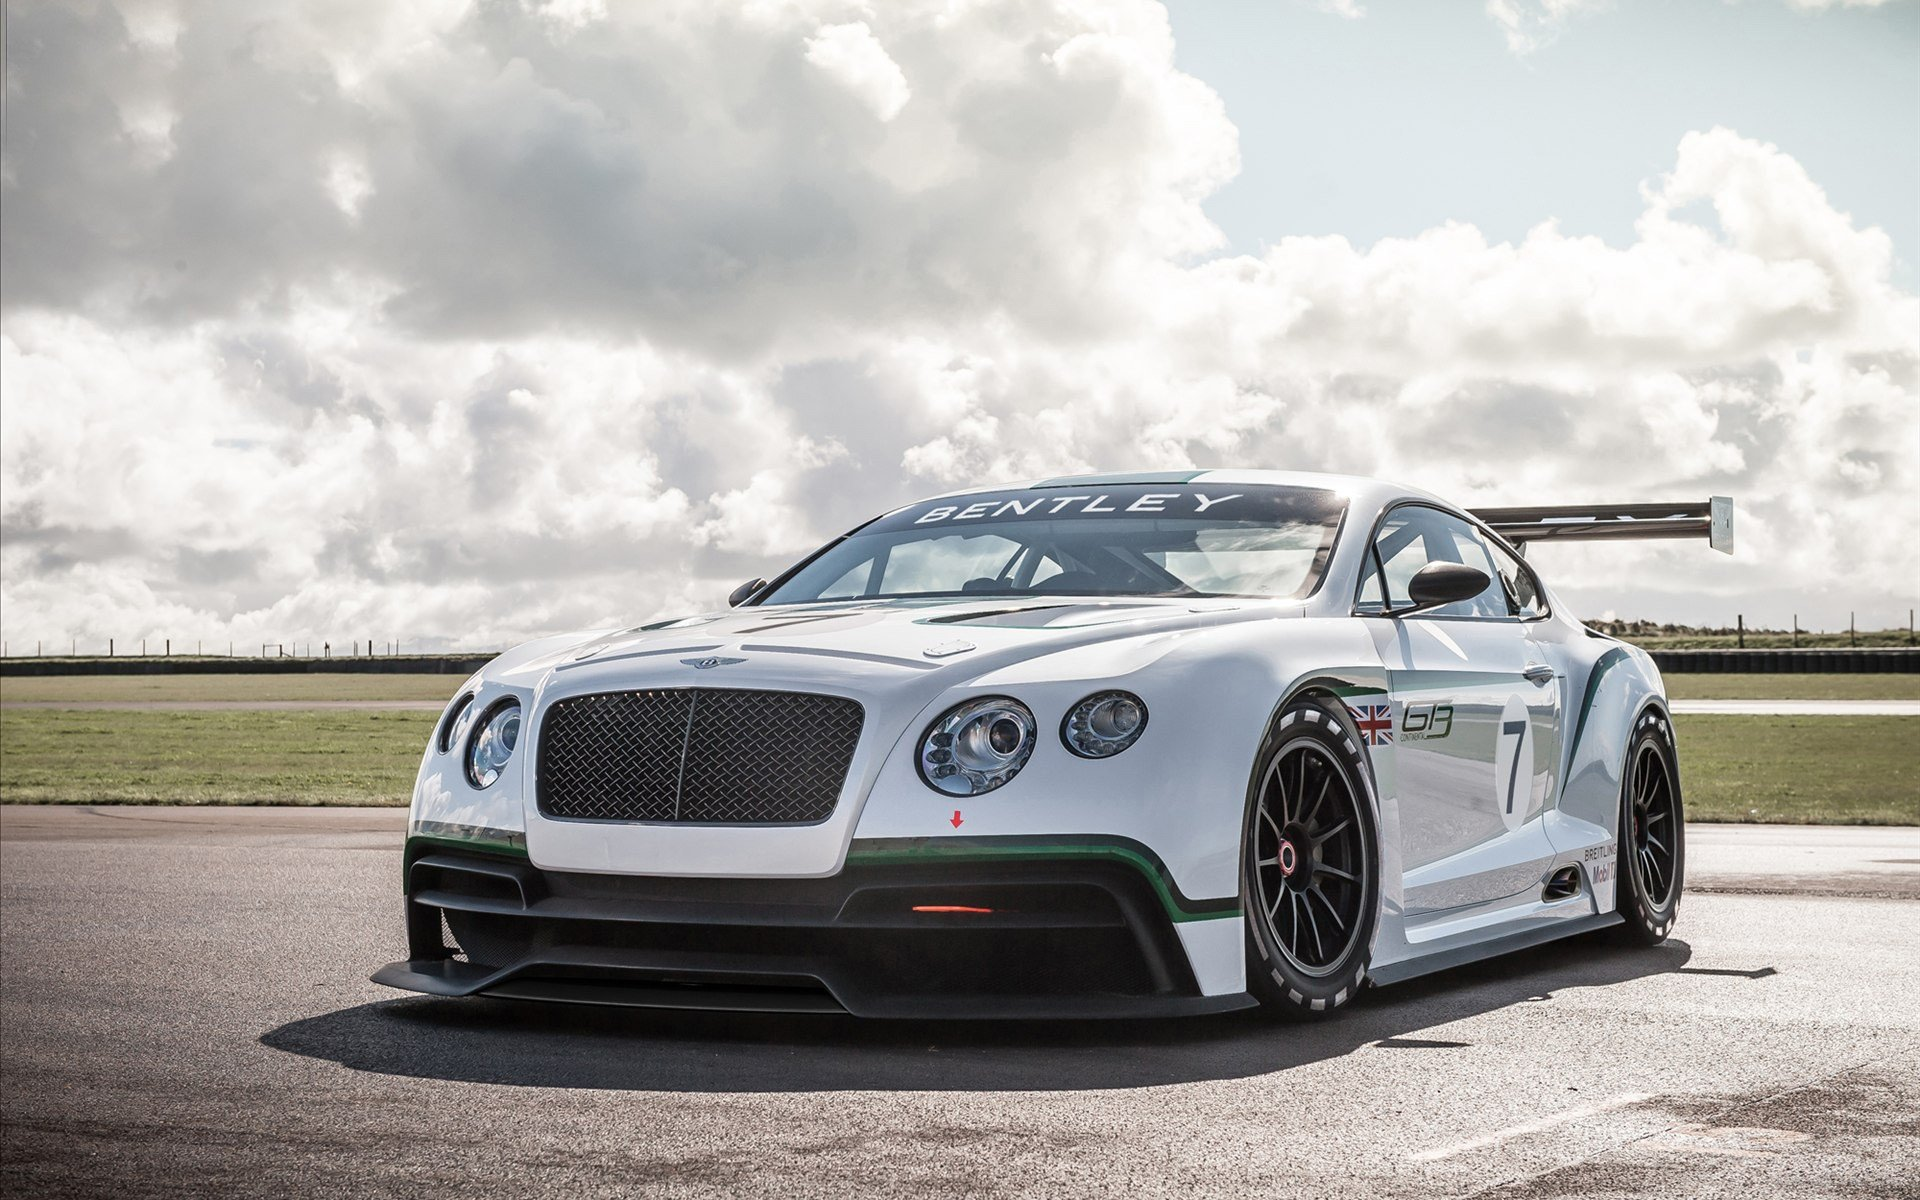 Latest Bentley Continental Gt3 Concept Racer Wallpaper Hd Car Free Download